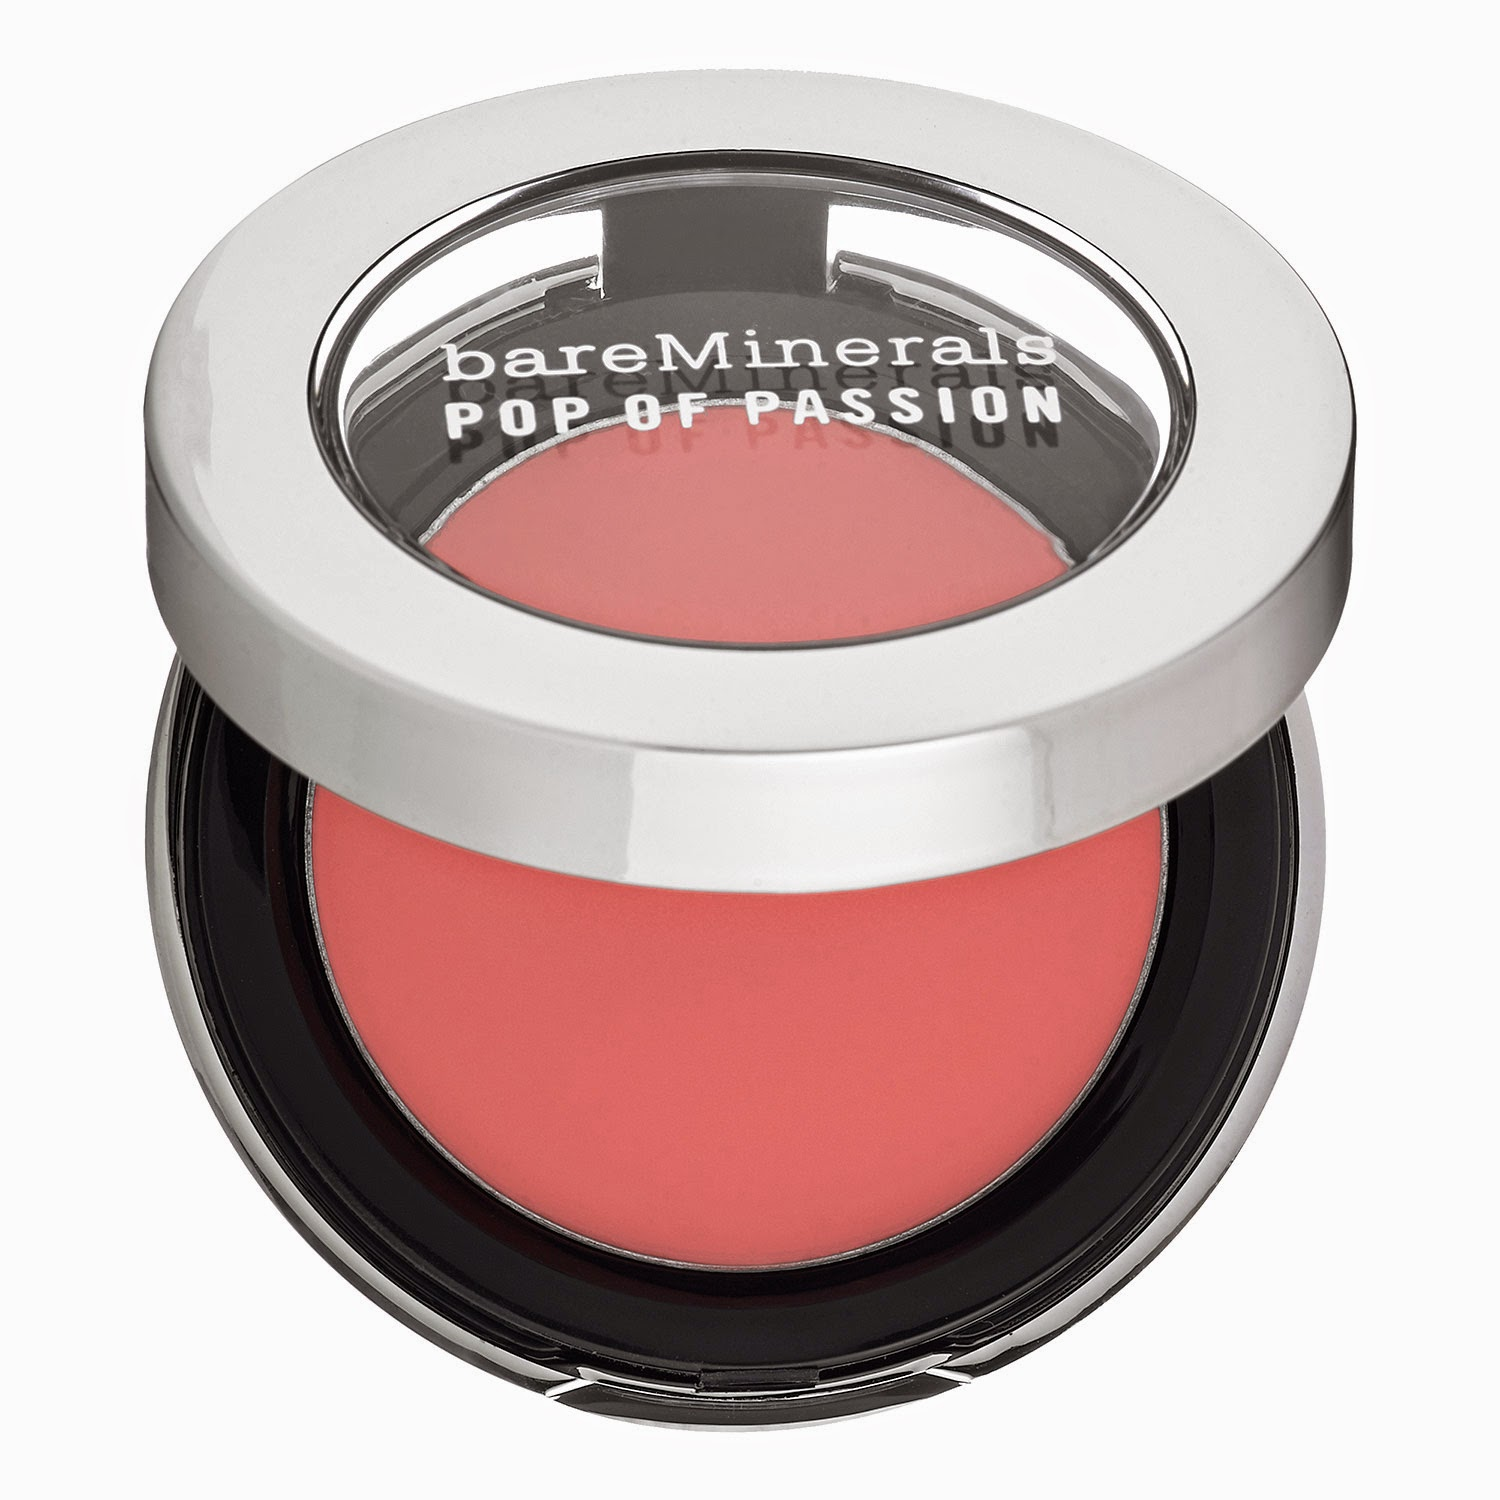 BareMinerals: Pop of Passion Balm Blushes - Posey Passion